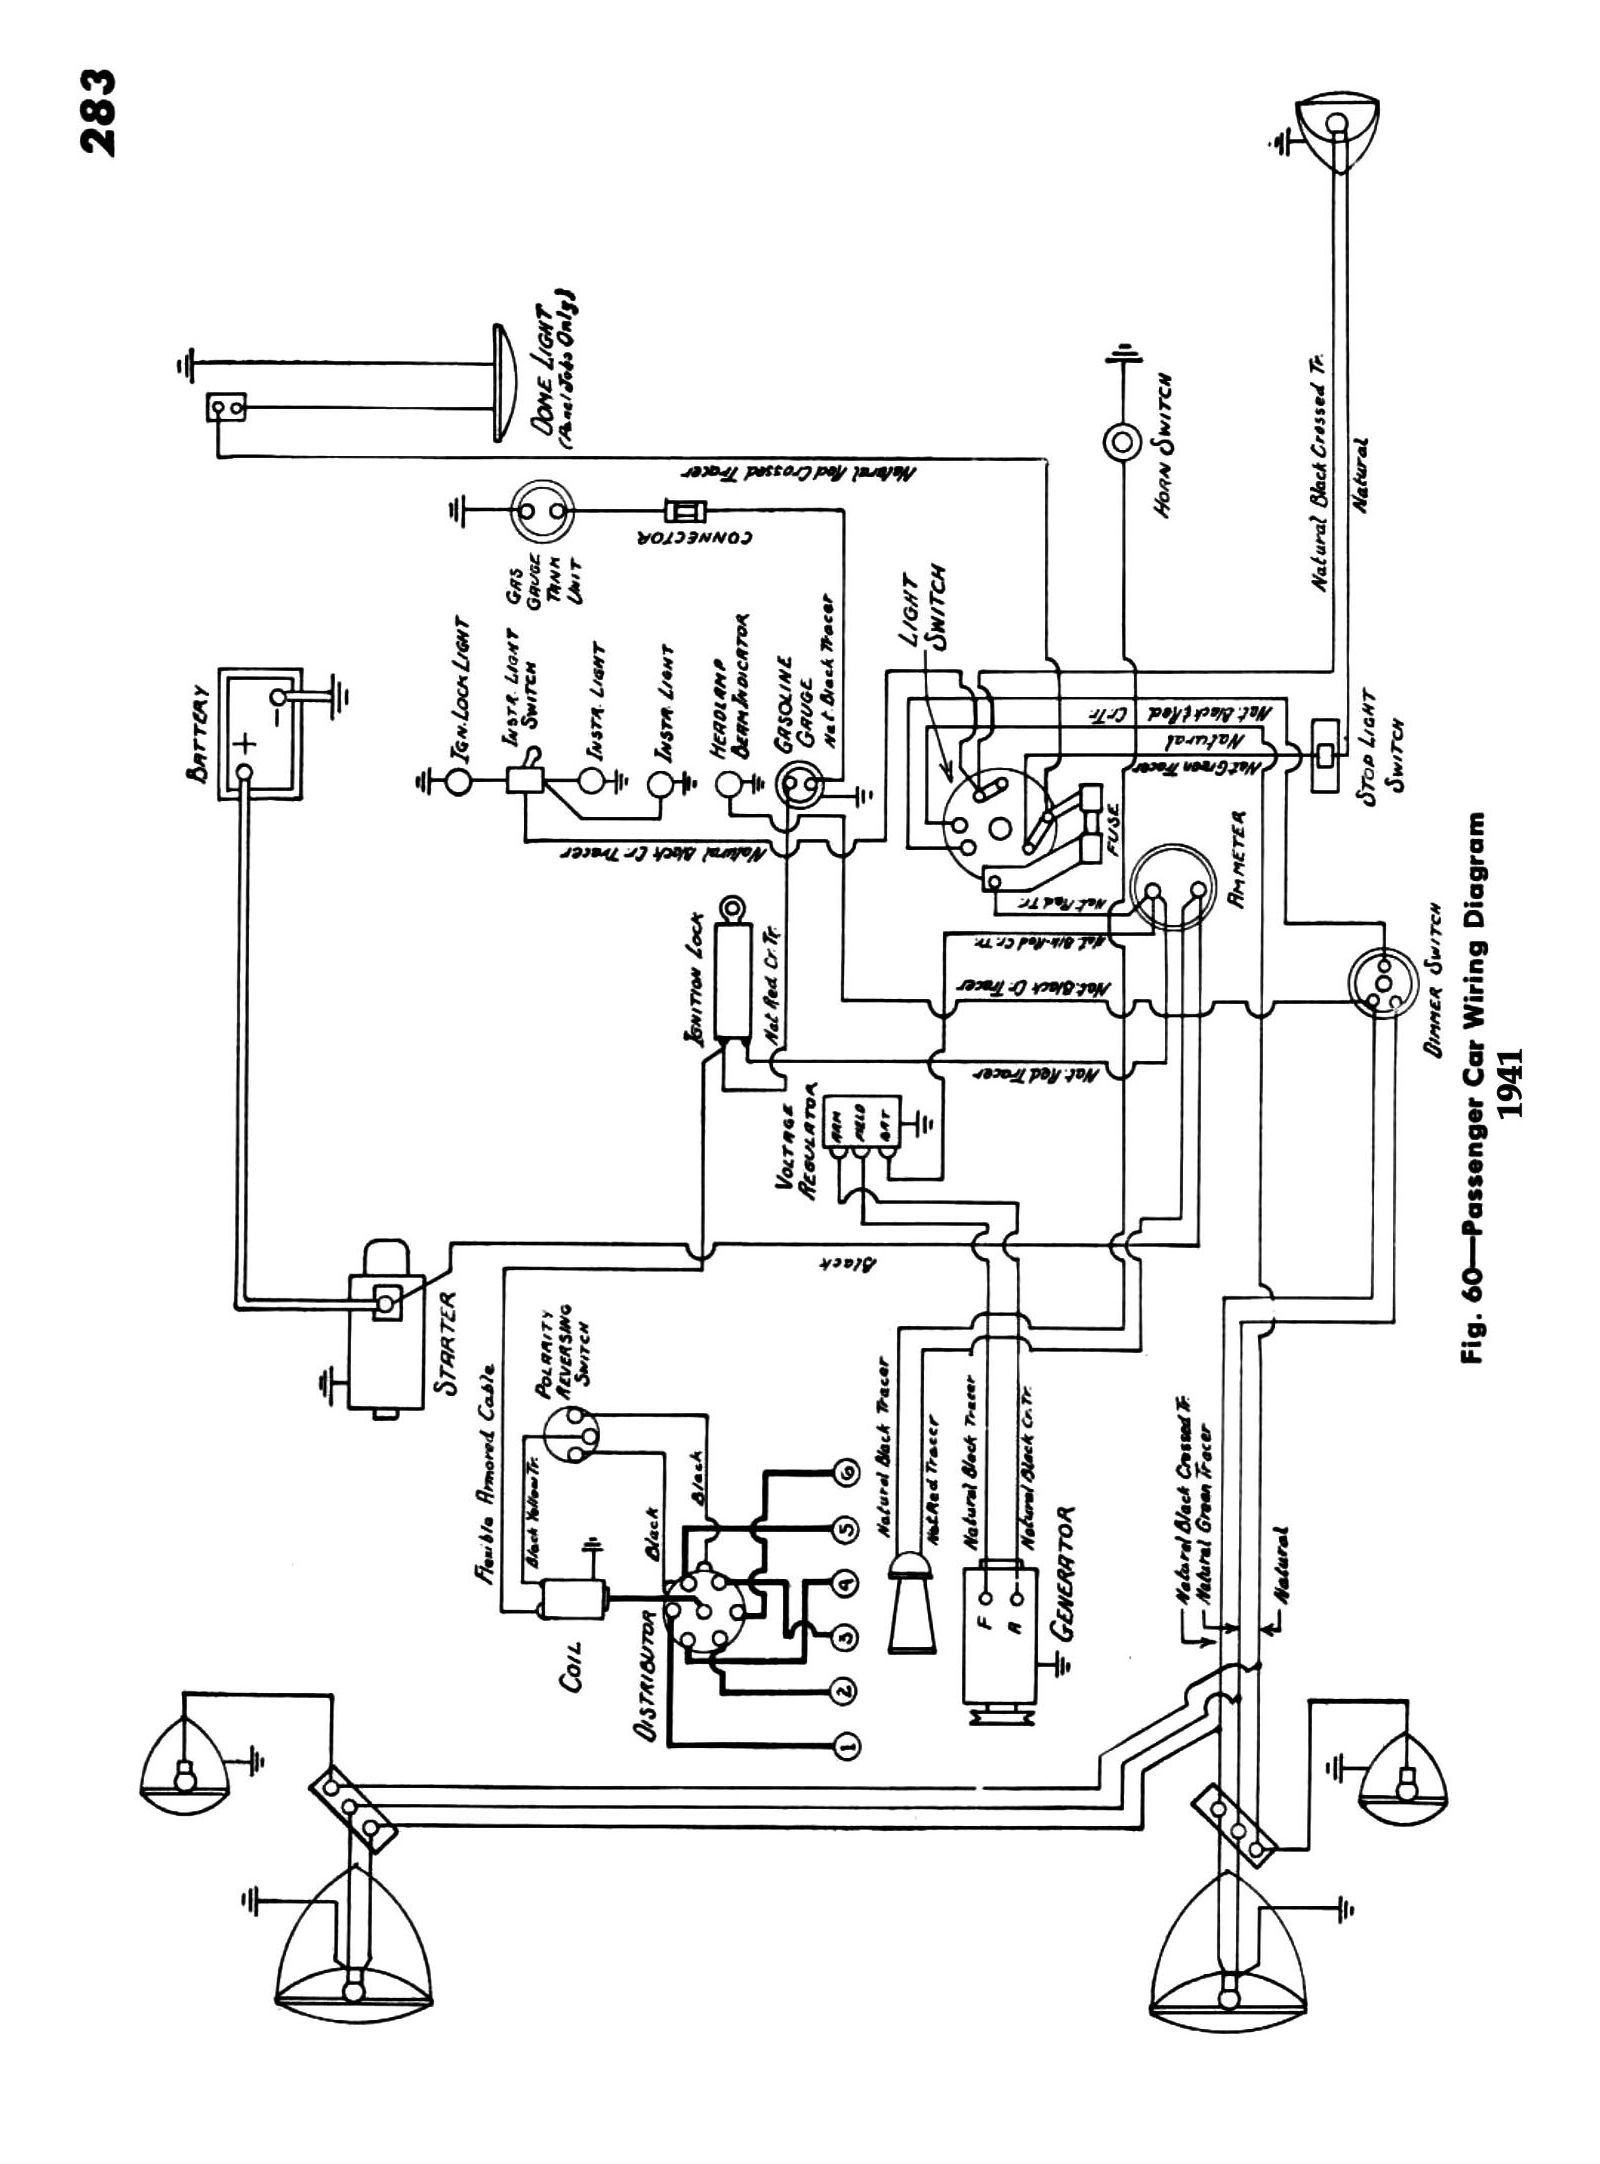 car ignition circuit diagram unique chevy ignition coil wiring diagram diagram  u2013 my wiring diagram